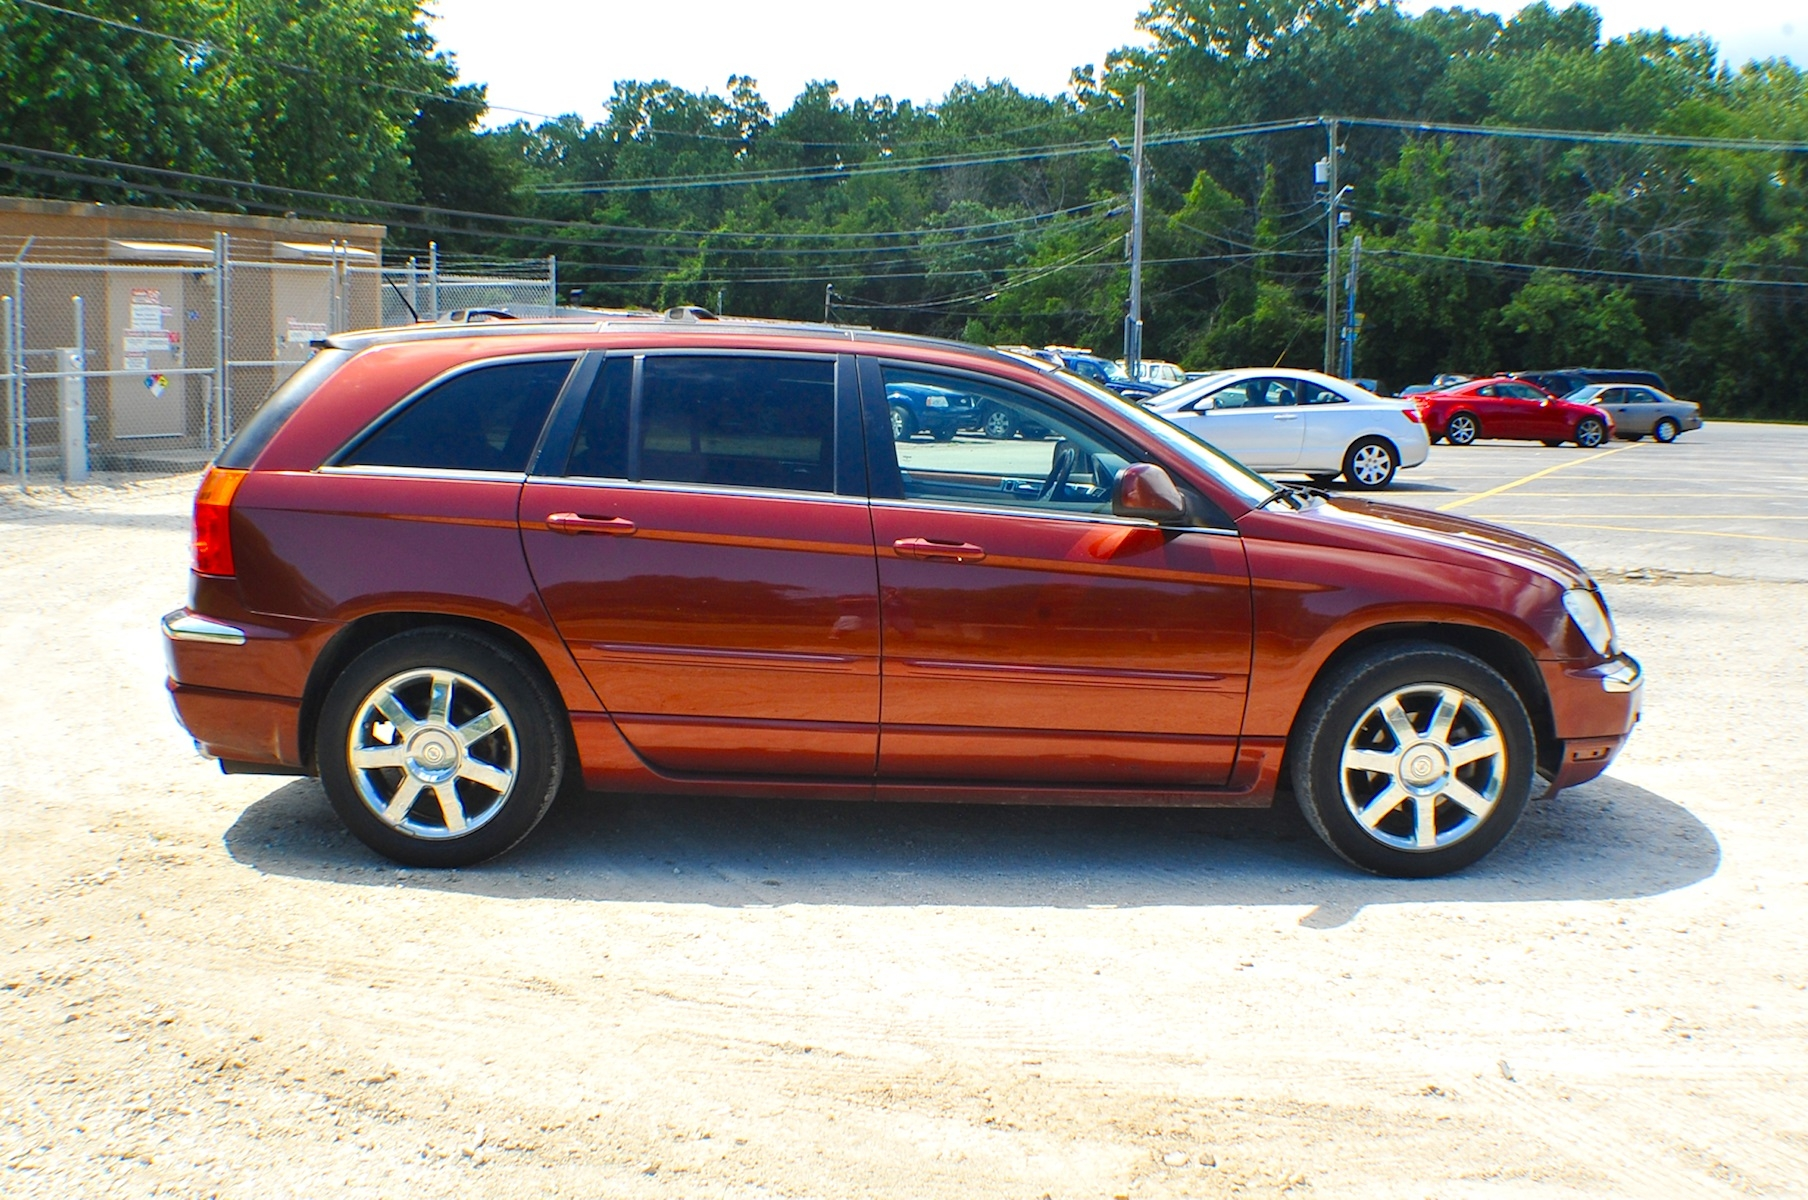 2007 Chrysler Pacifica Bronze Limited SUV Sale Bannockburn Barrington Beach Park